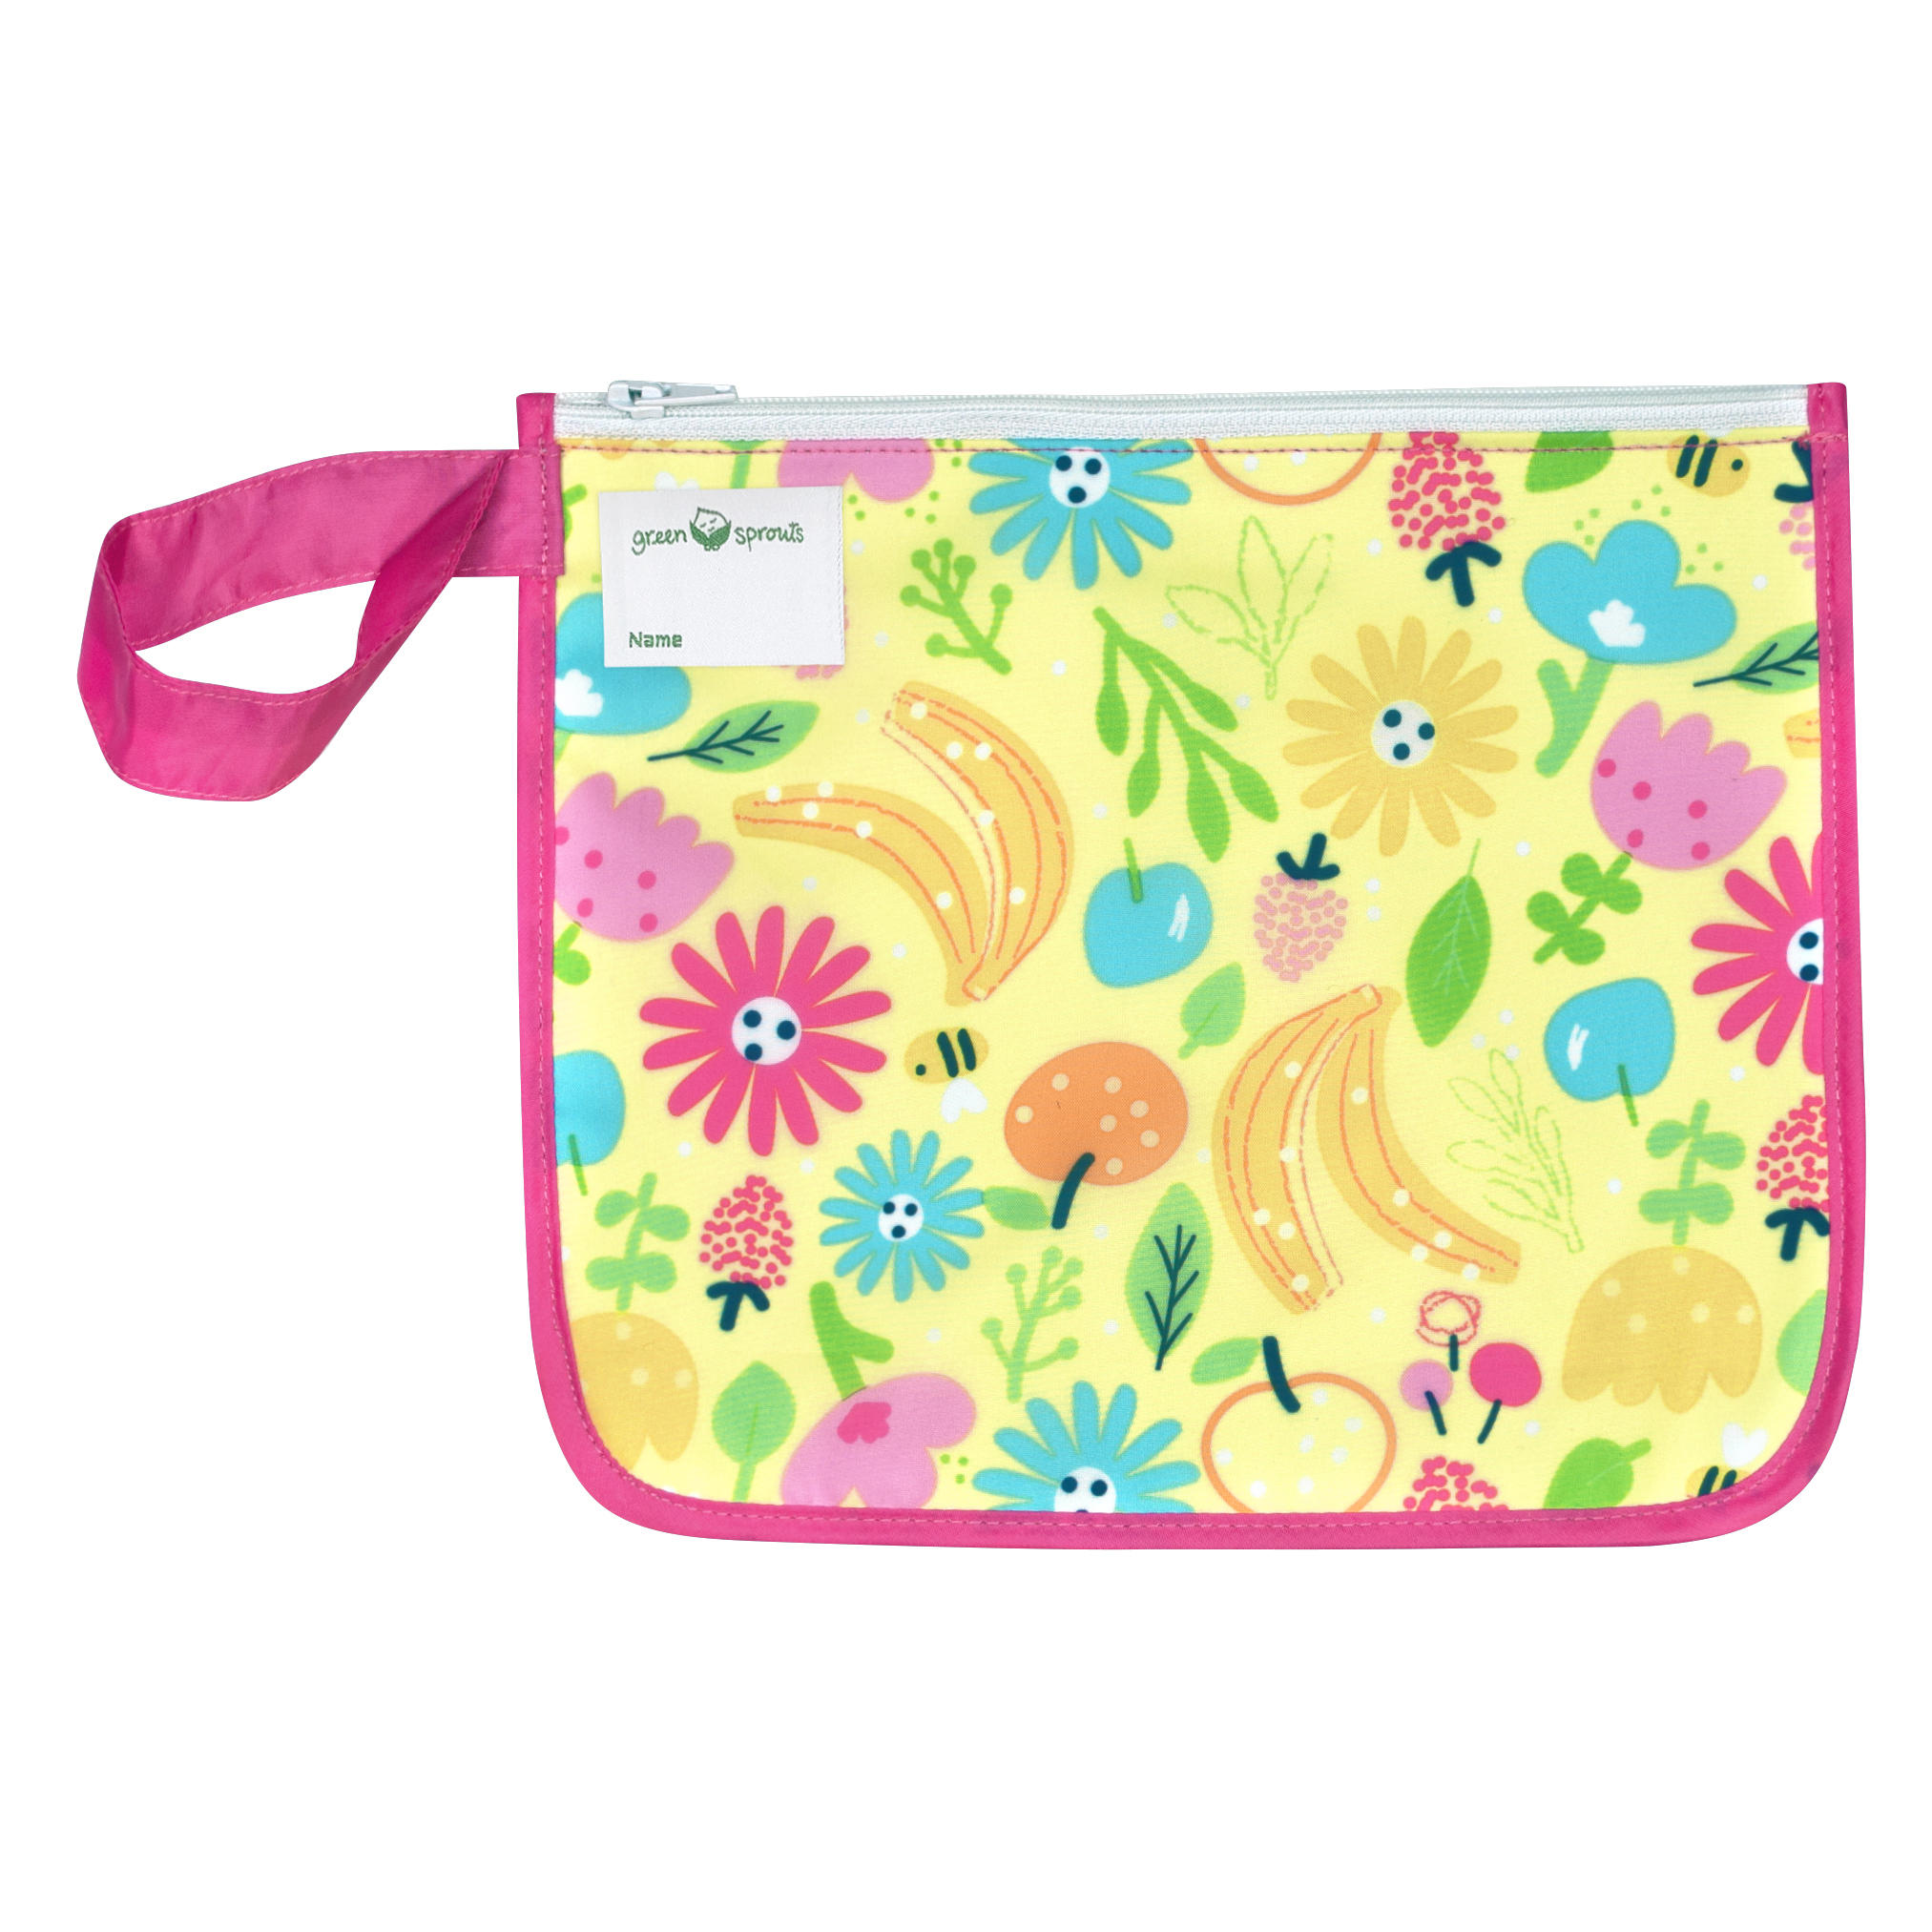 Bolsita Reusable Snack Bag Rosado Abeja Floral